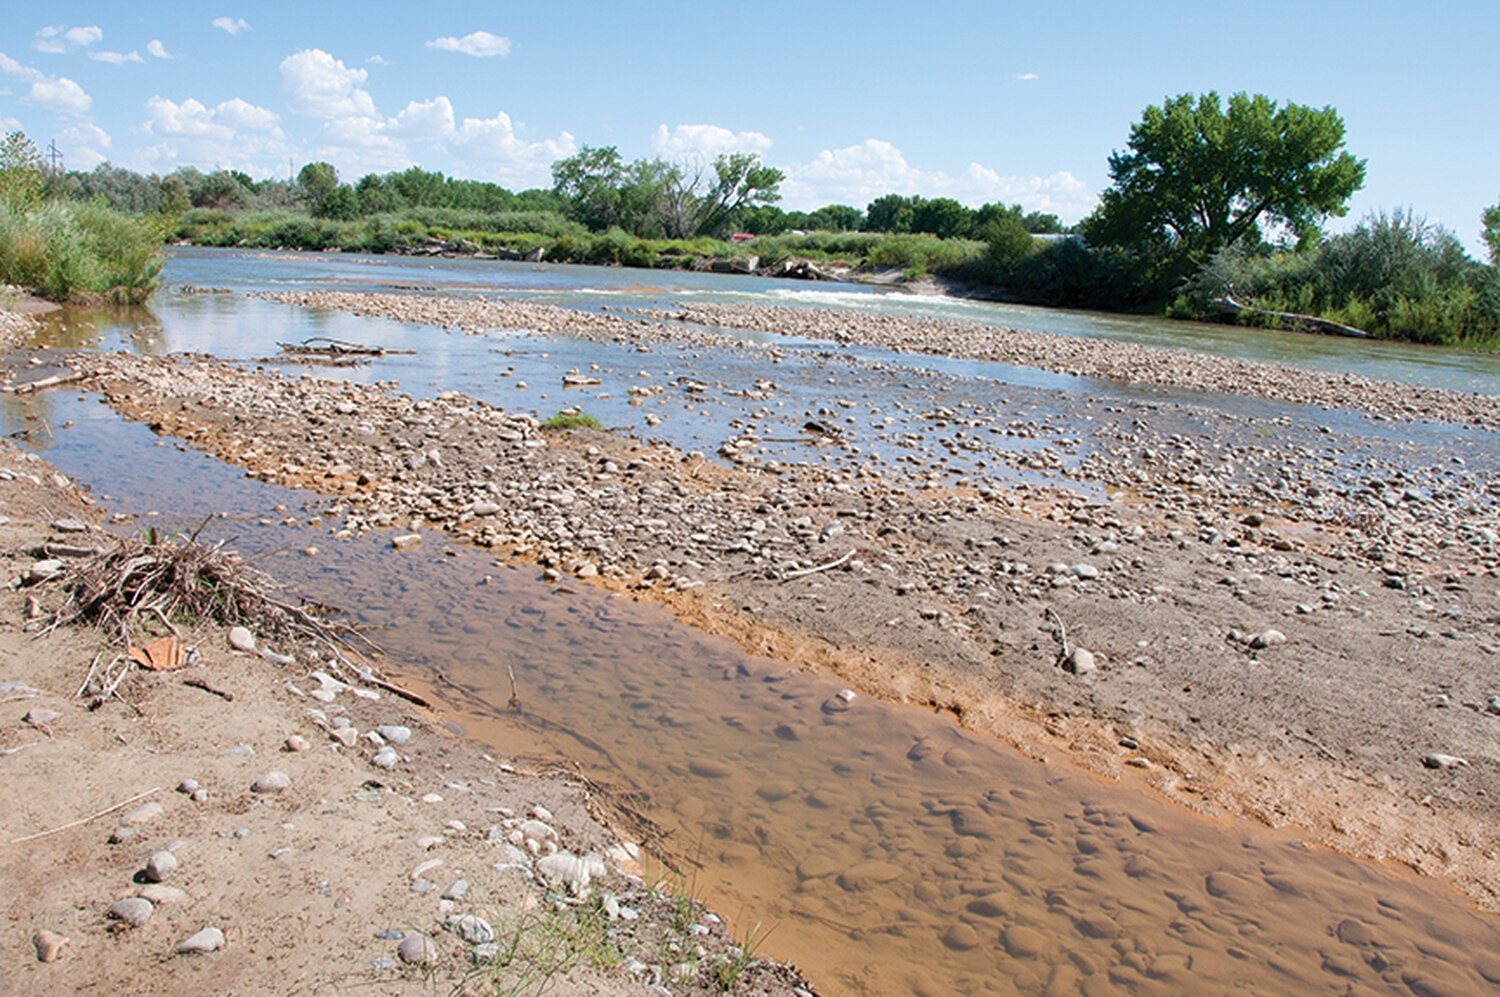 Orange-tinged banks of the Animas River in Aztec are a visible marker of an ongoing problem.